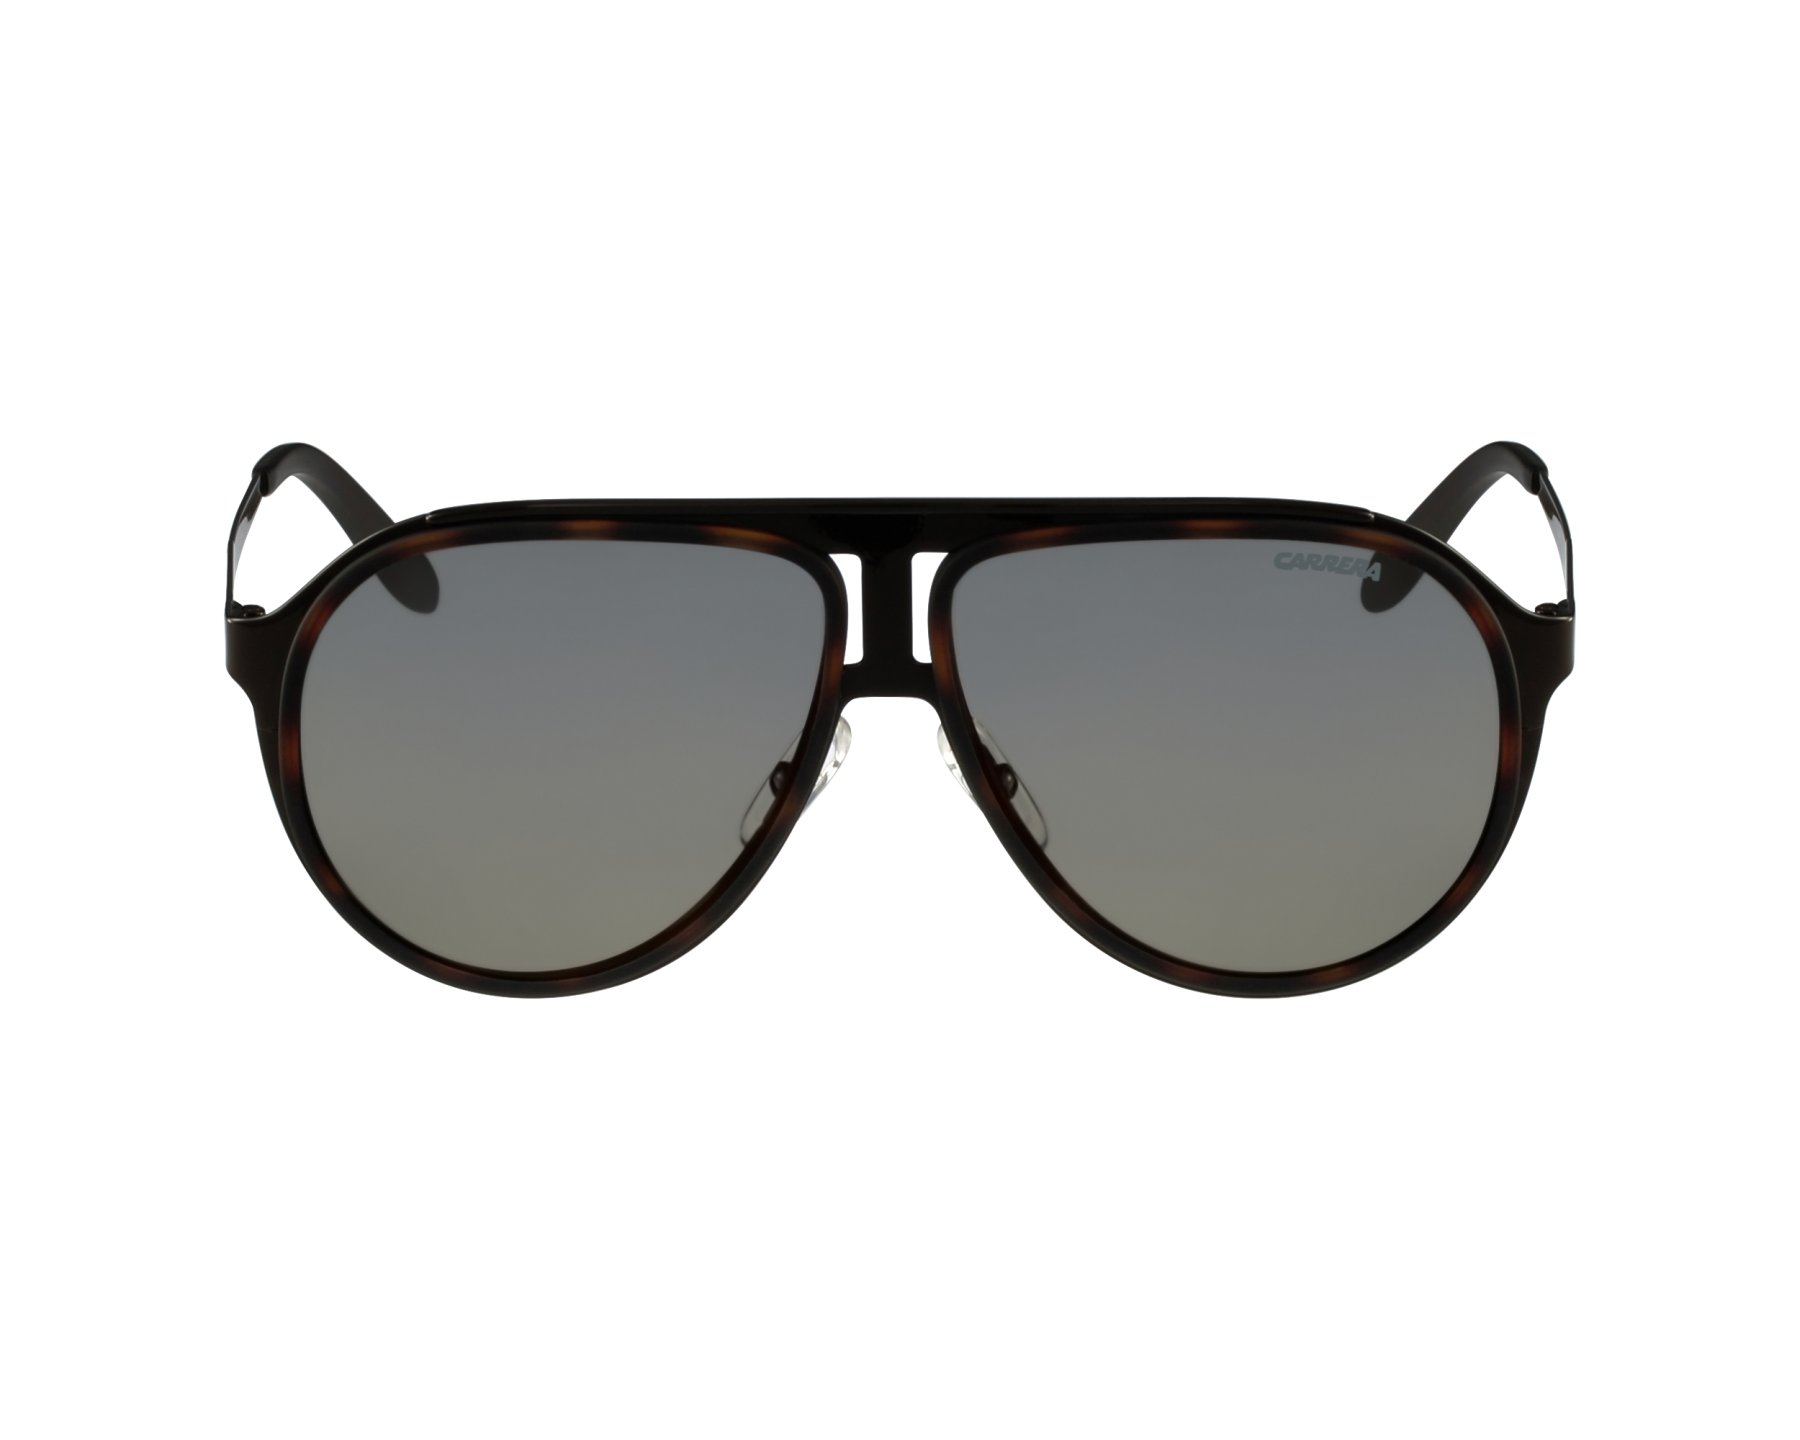 Carrera Sunglasses Brown  carrera sunglasses carrera 100 s kltct 61 visionet